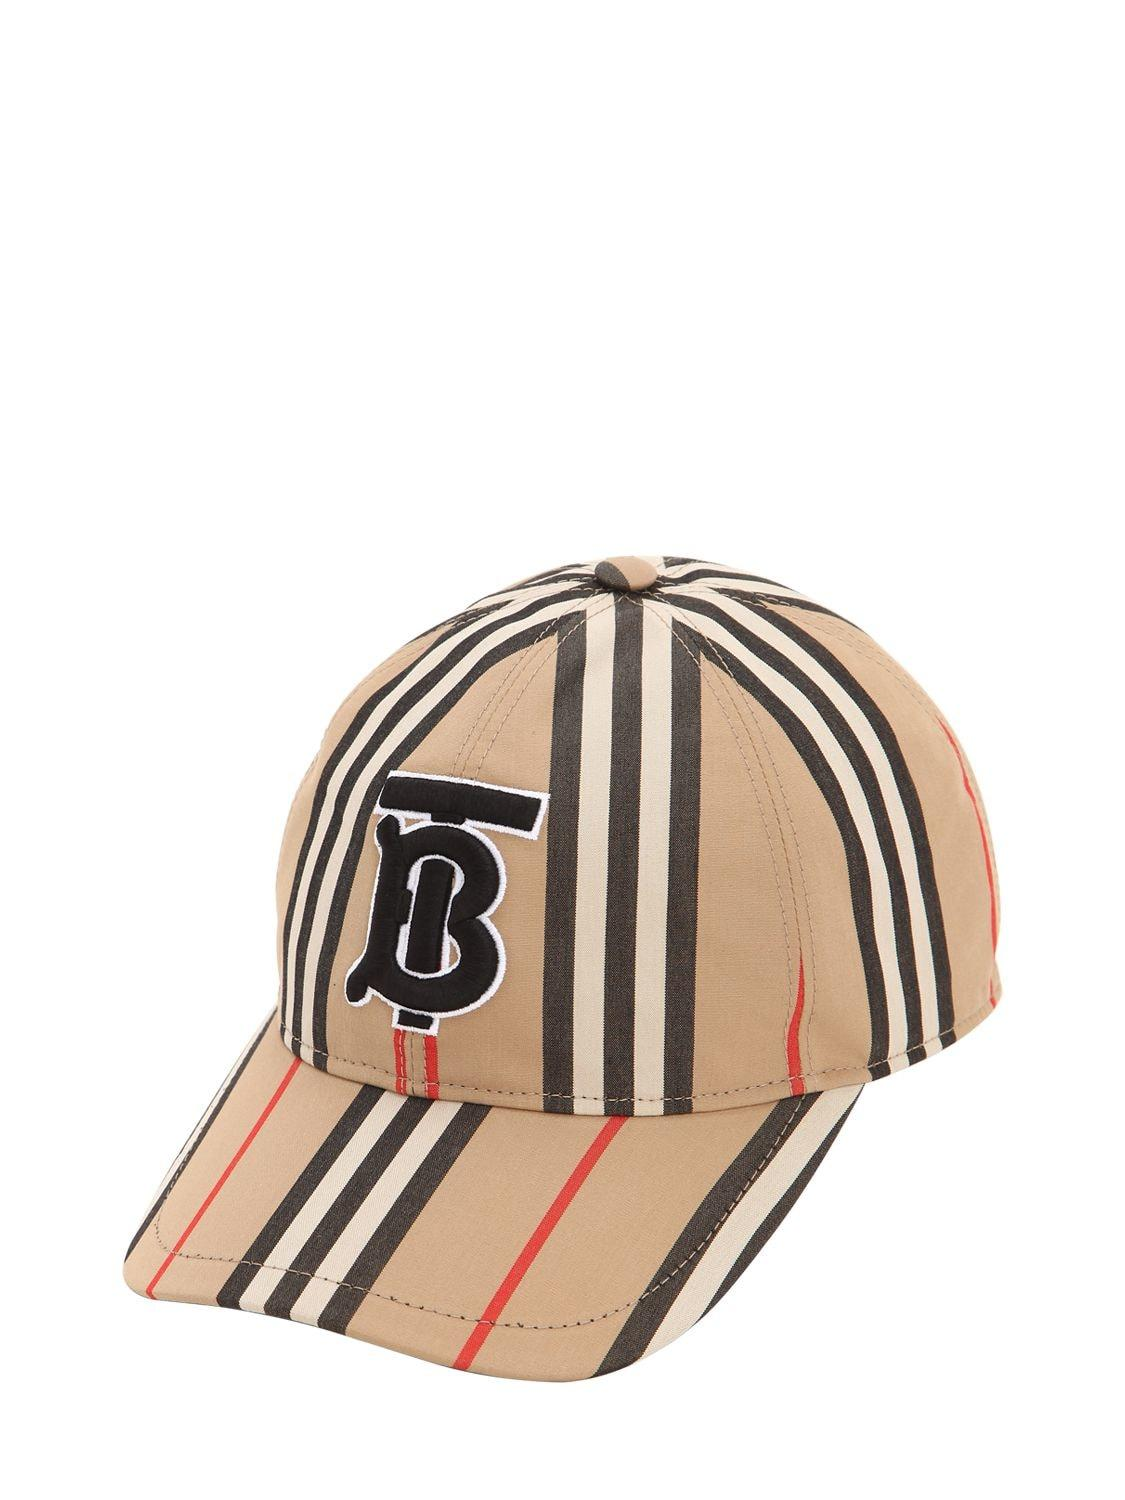 53fc4066b042a Lyst - Burberry Icon Striped Cotton Baseball Hat in Natural - Save 9%